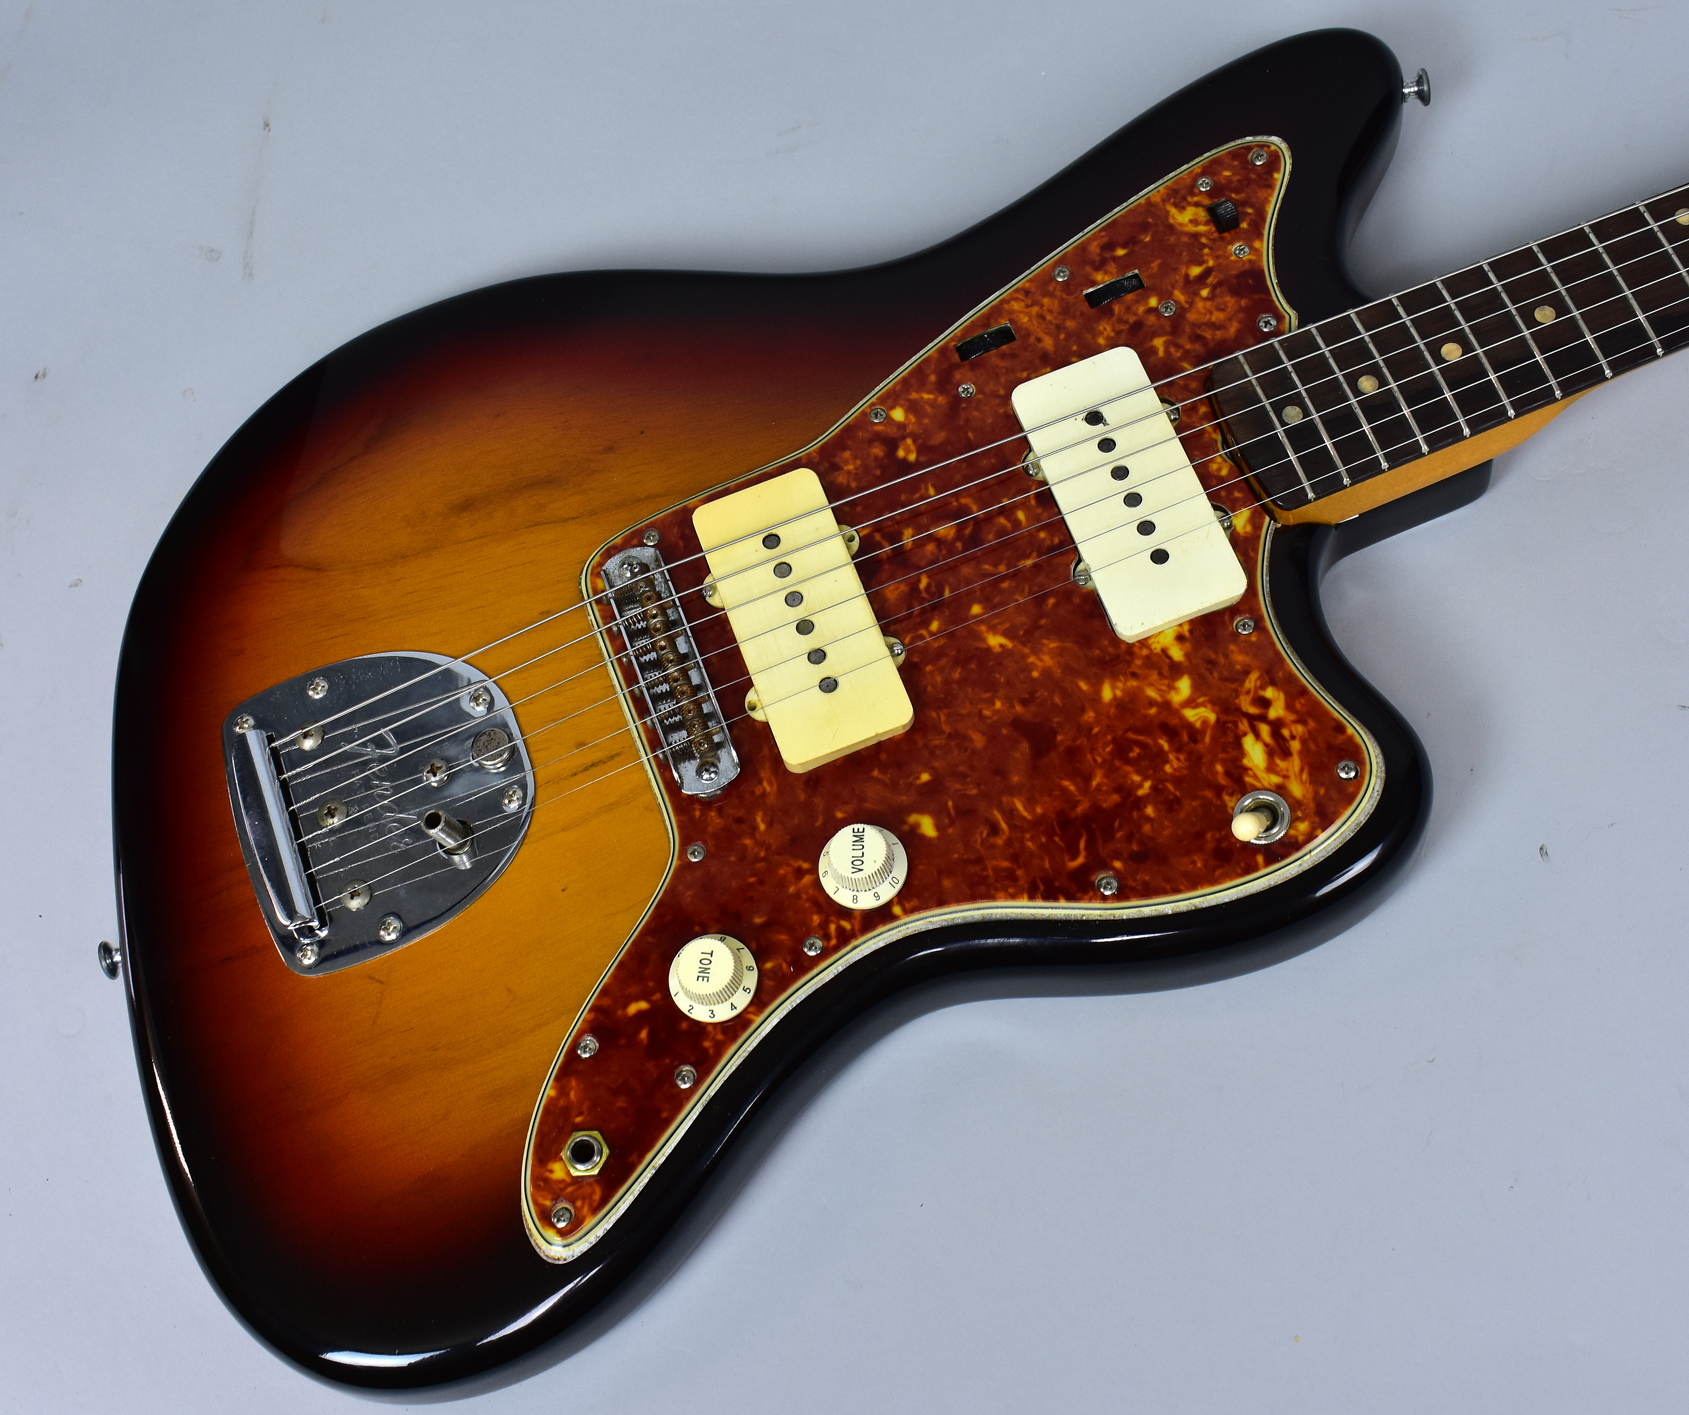 1960 fender vintage jazzmaster sunburst electric guitar usa w ohsc sunburst guitars electric. Black Bedroom Furniture Sets. Home Design Ideas